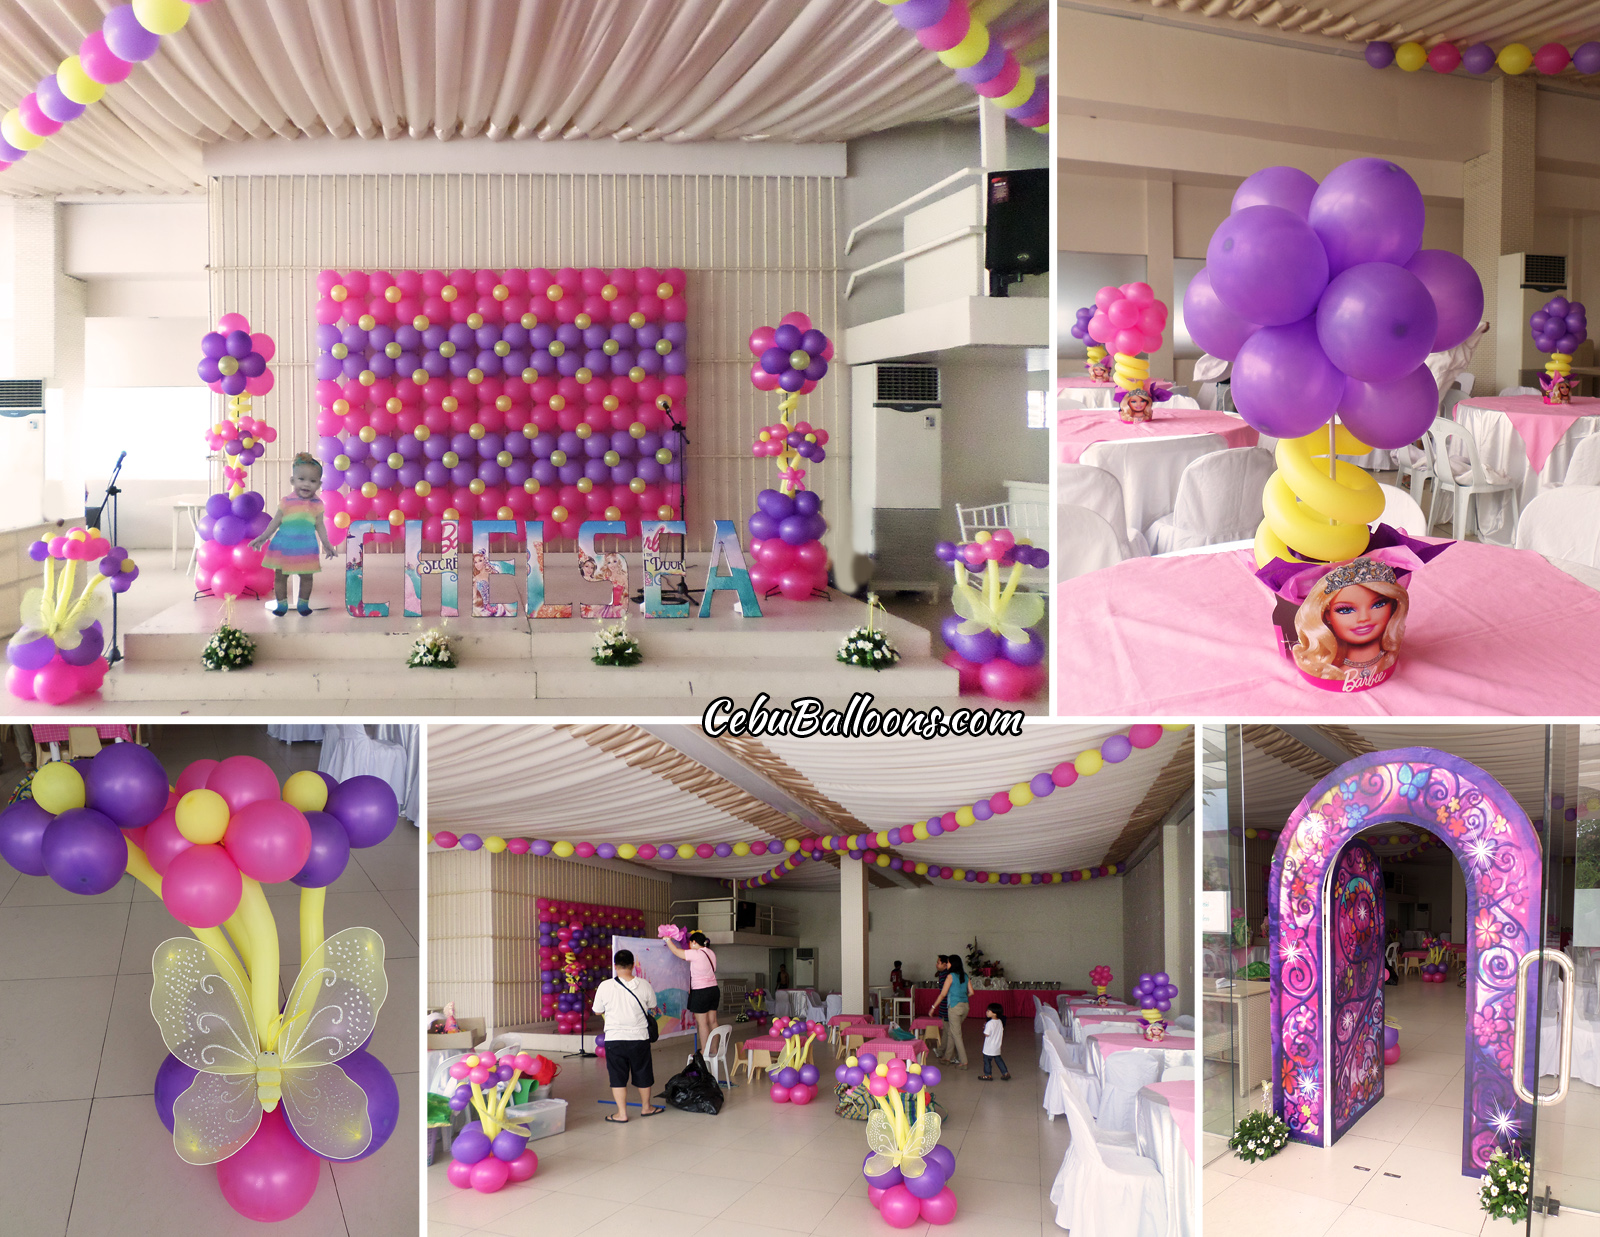 decorations royal planning and img events event decor